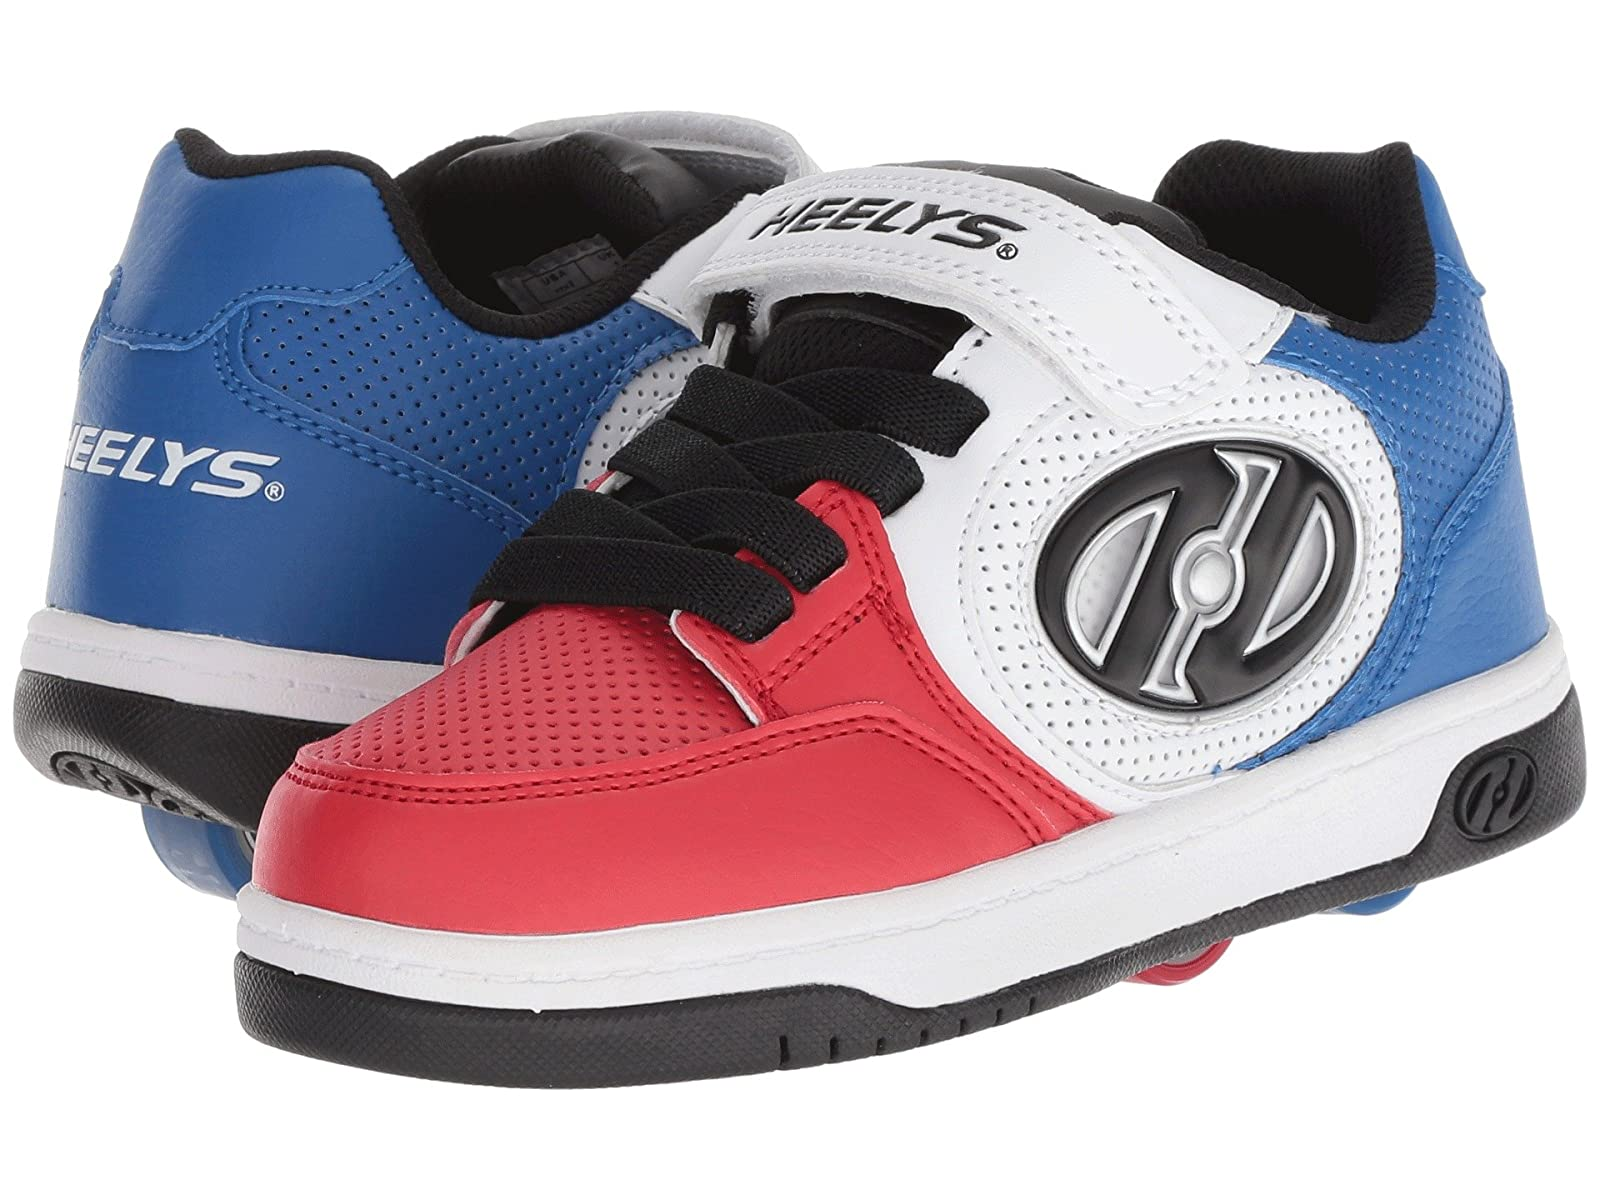 Heelys Plus X2 Lighted (Little Kid/Big Kid)Atmospheric grades have affordable shoes